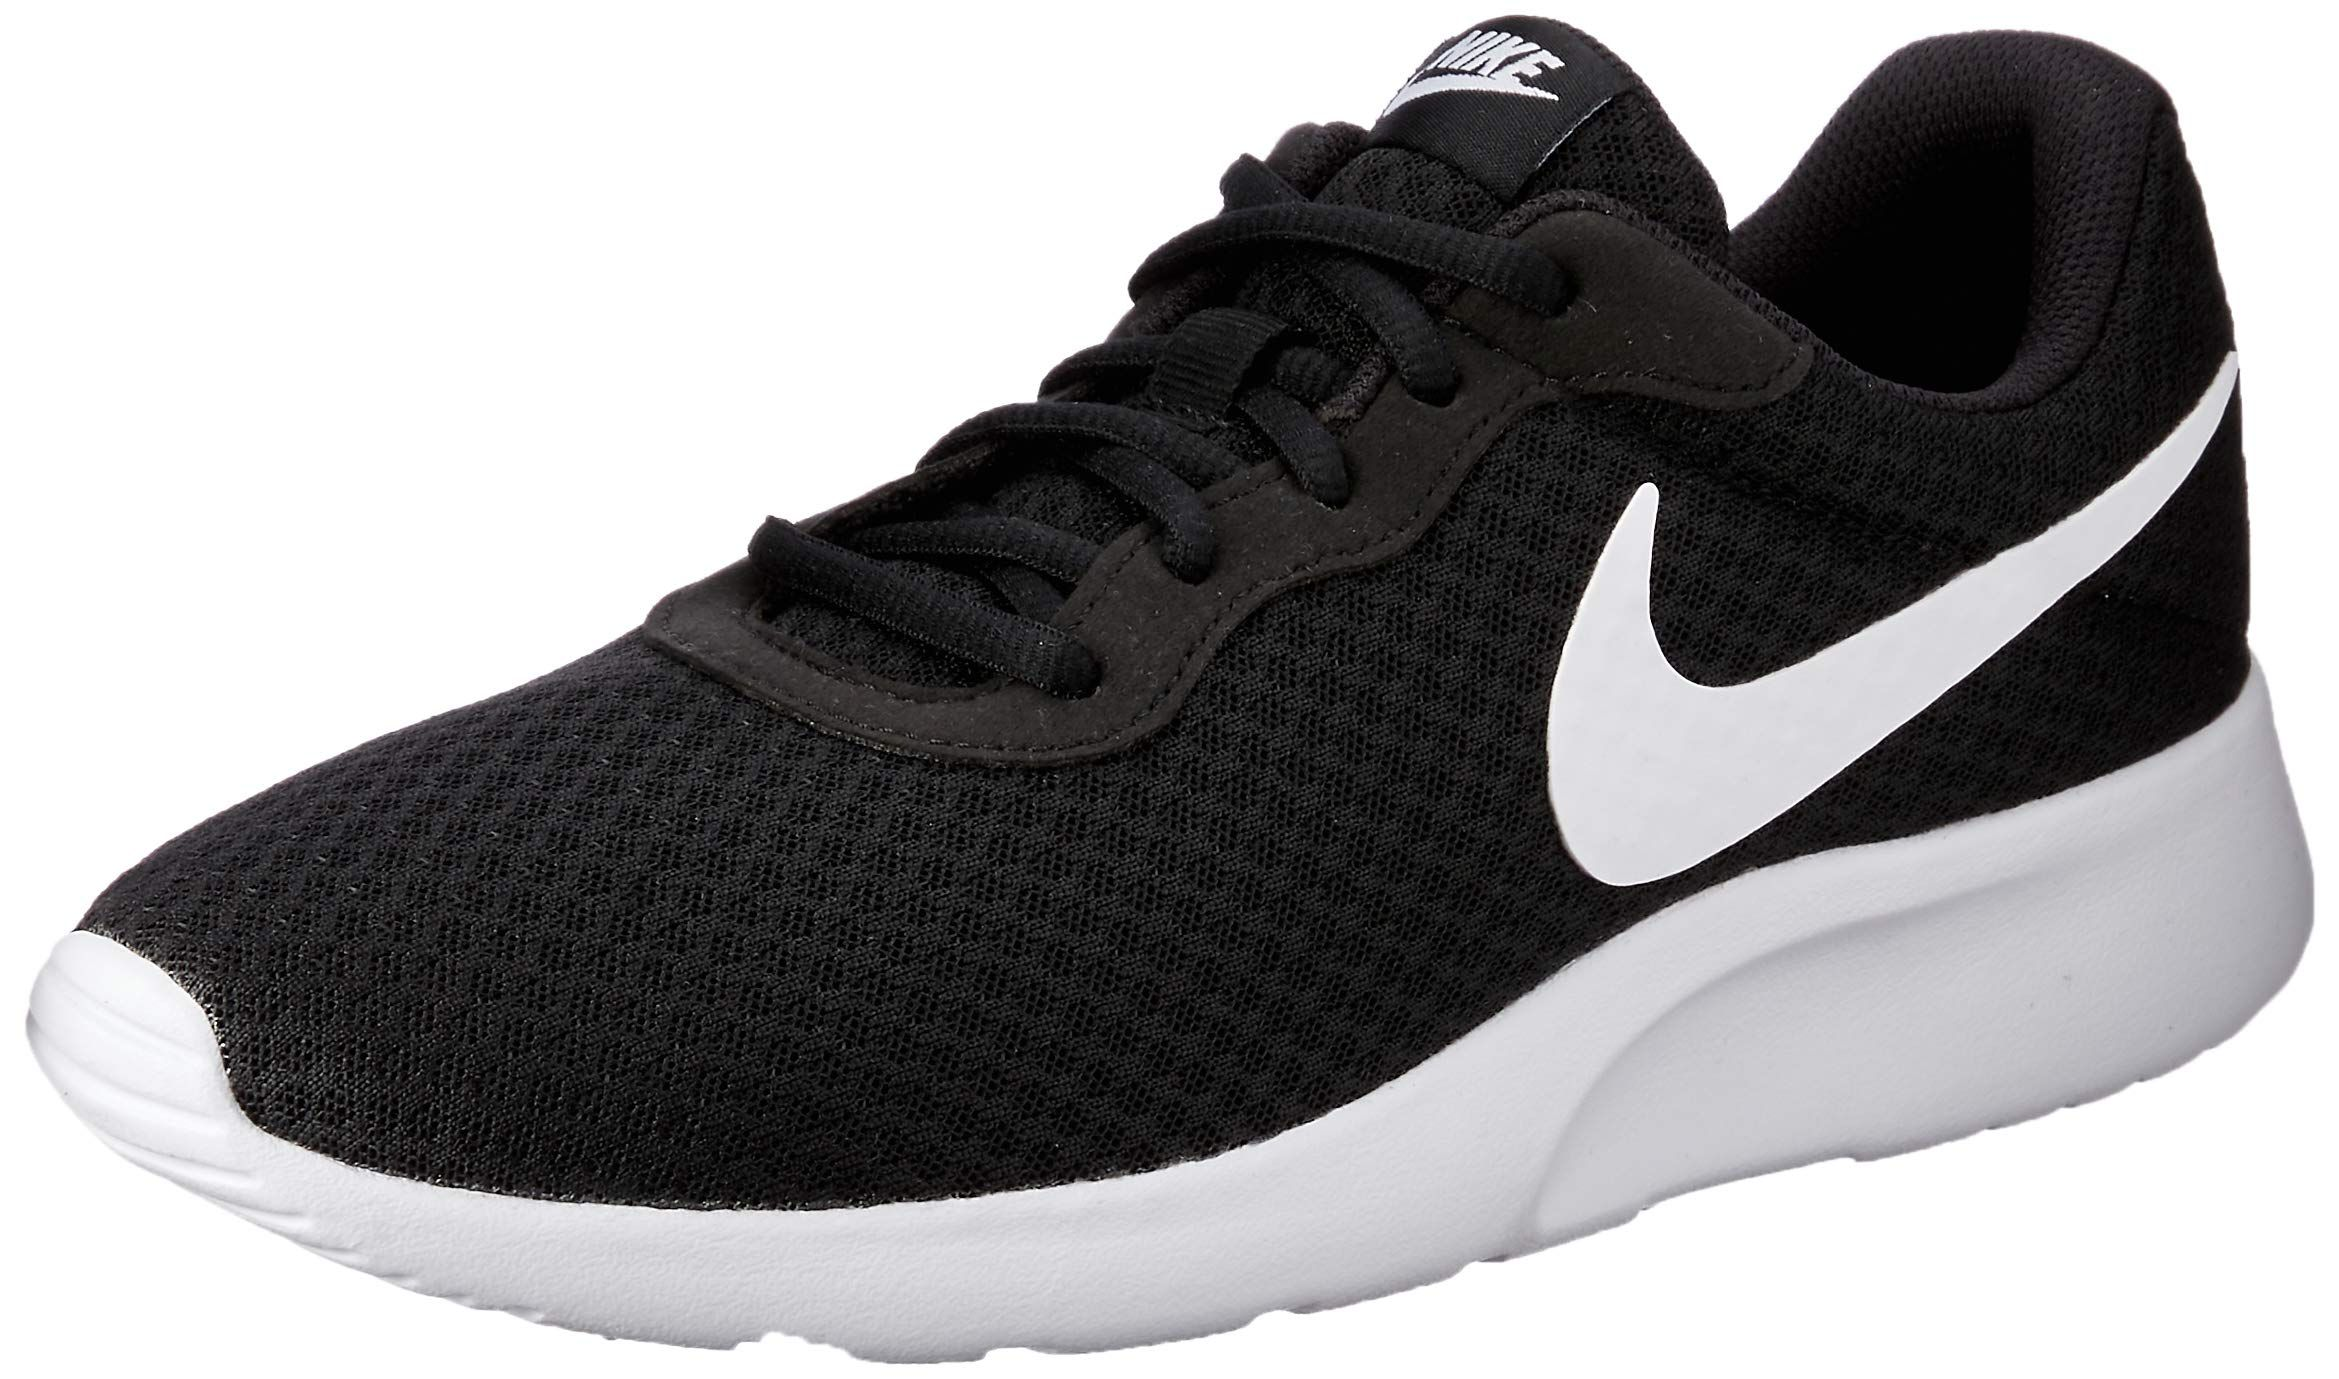 Best Rated In Men S Walking Shoes Helpful Customer Nike Sneakers Tanjun Shoes Comfortable Walking R In 2020 New Nike Shoes Running Shoes For Men Shoes For Less